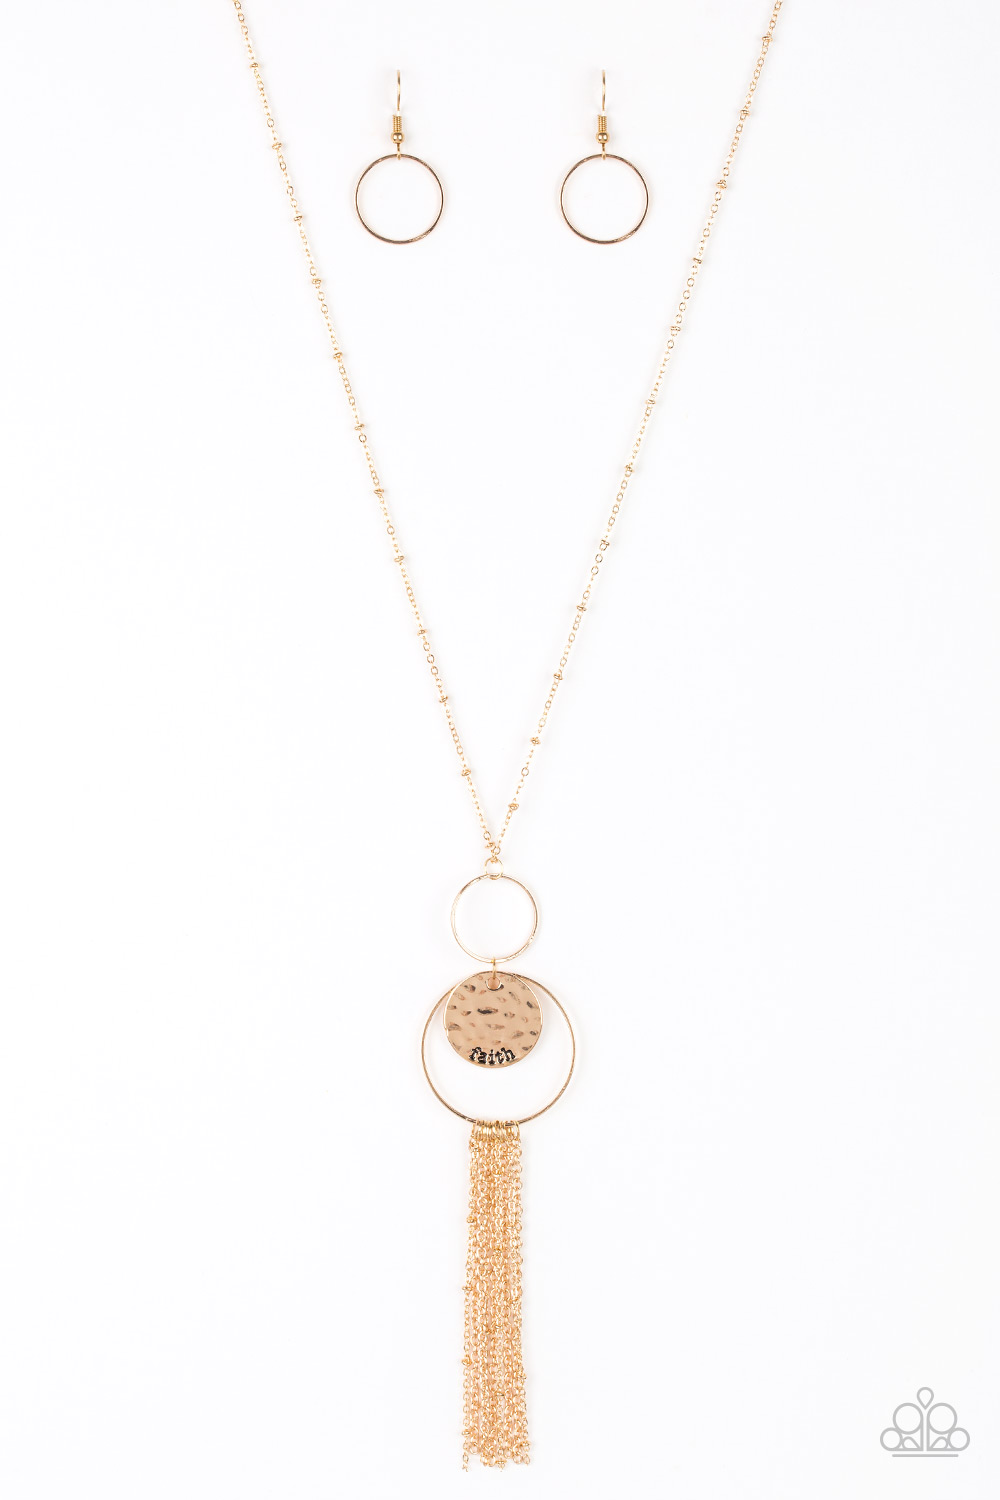 Faith Makes All Things Possible - Gold Necklace $5 www.my-bling.com